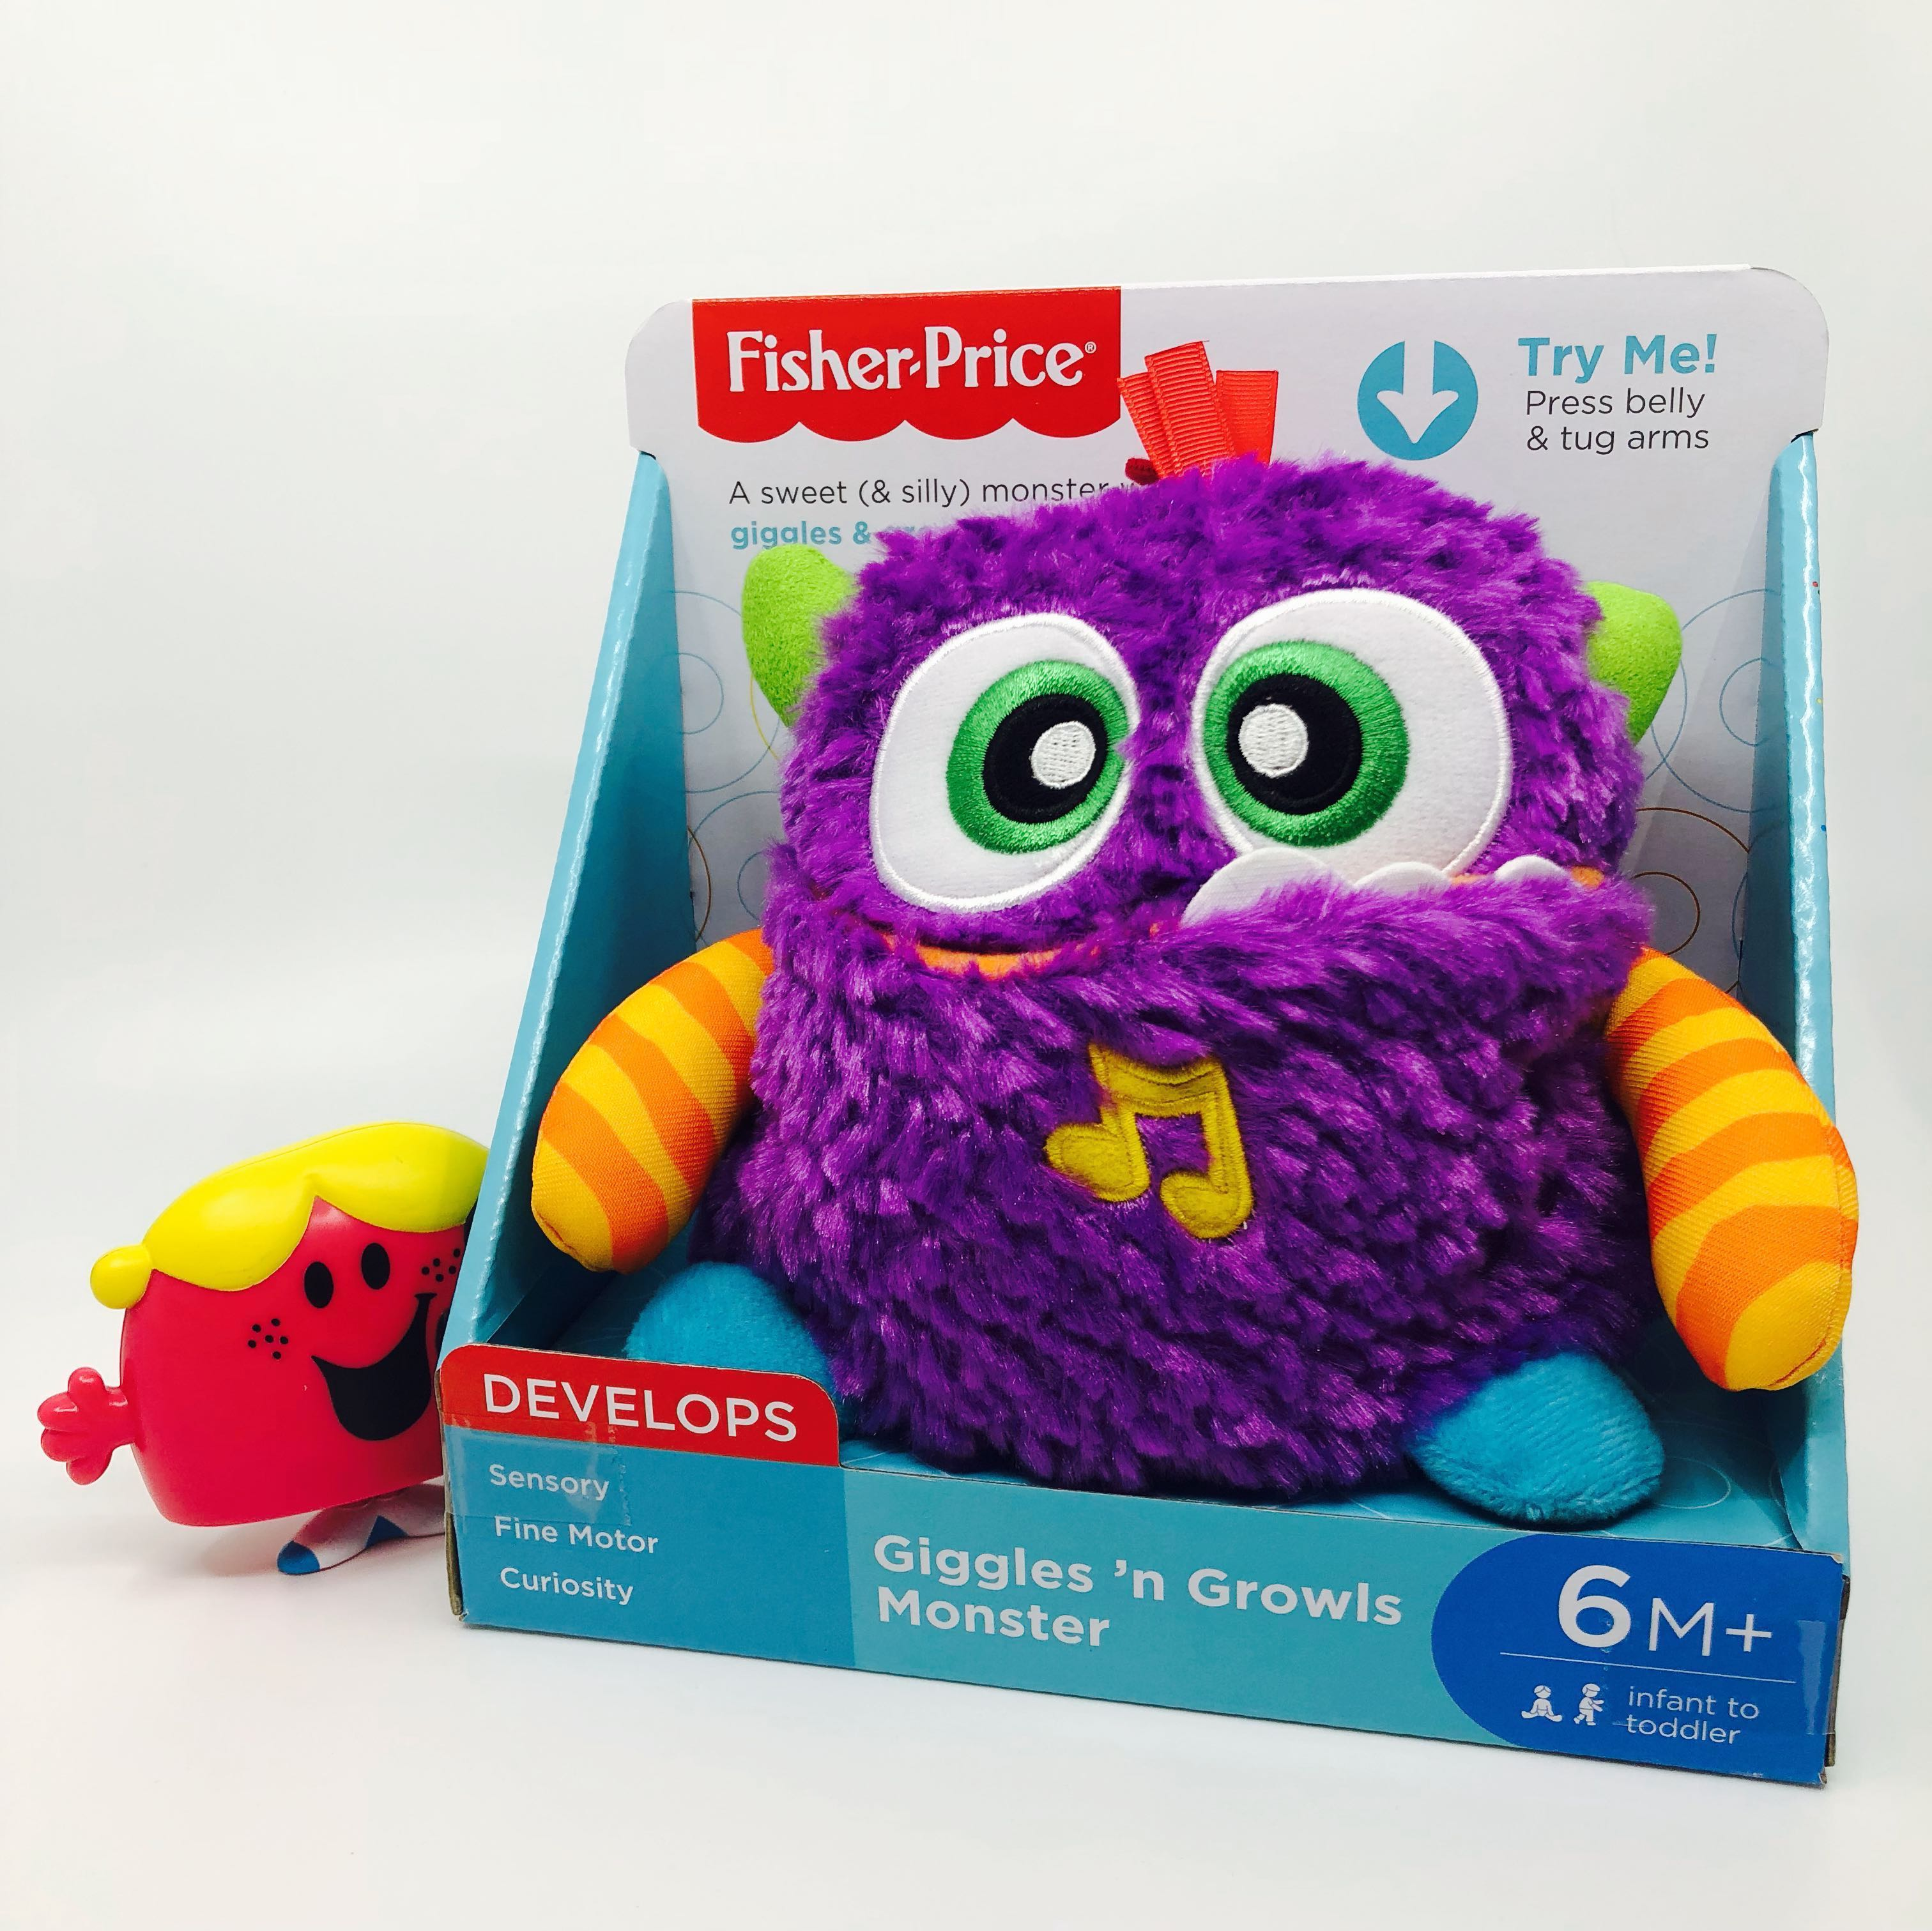 d74ccd1f6 Ready Stocked~ Fisher-Price Giggles 'n Growls Monster plush, Babies ...